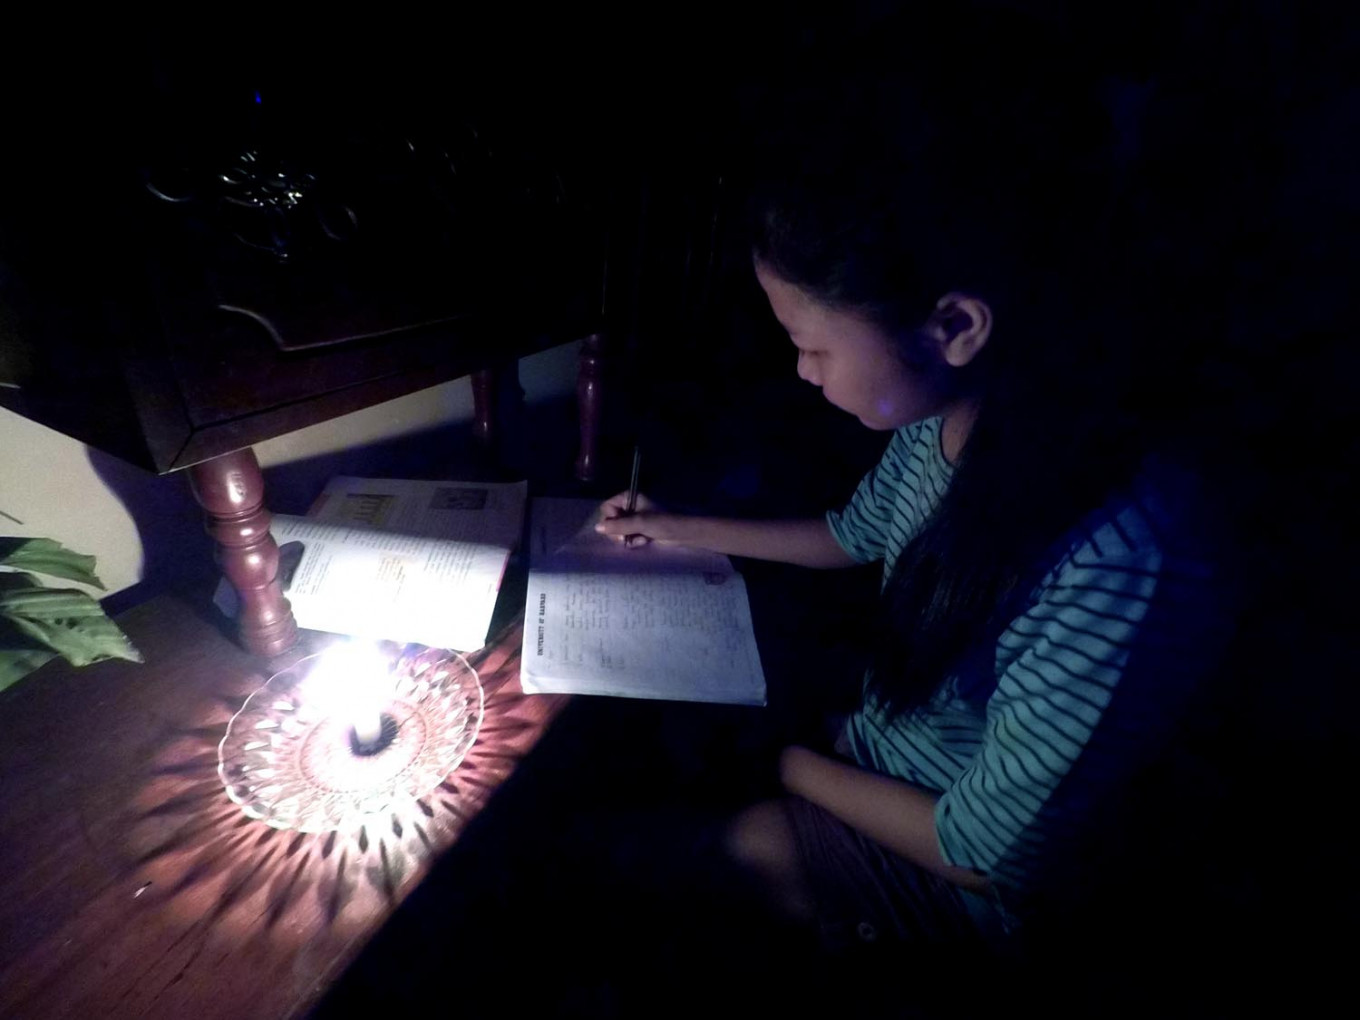 Energy ministry asks PLN customer to be 'grateful' for 10-hour power outage